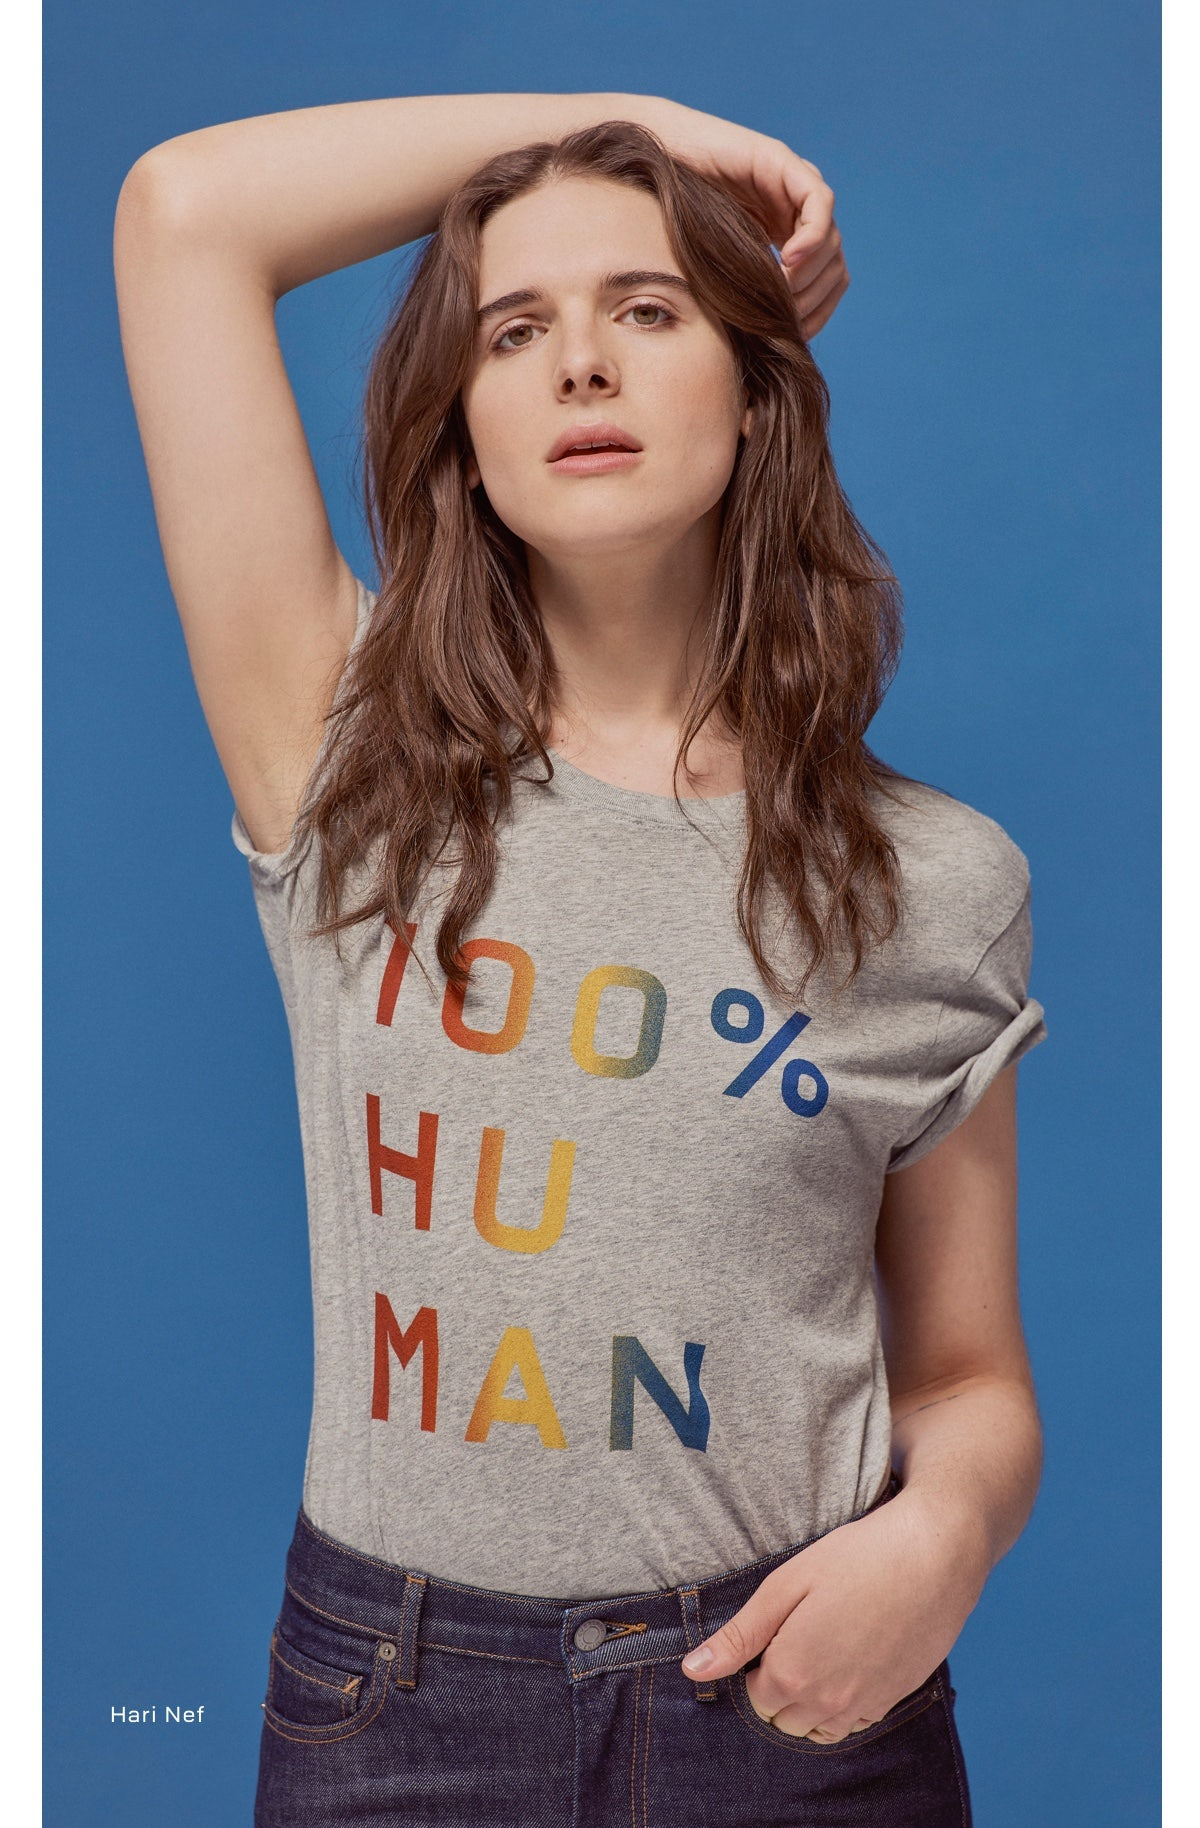 We're all 100% Human.